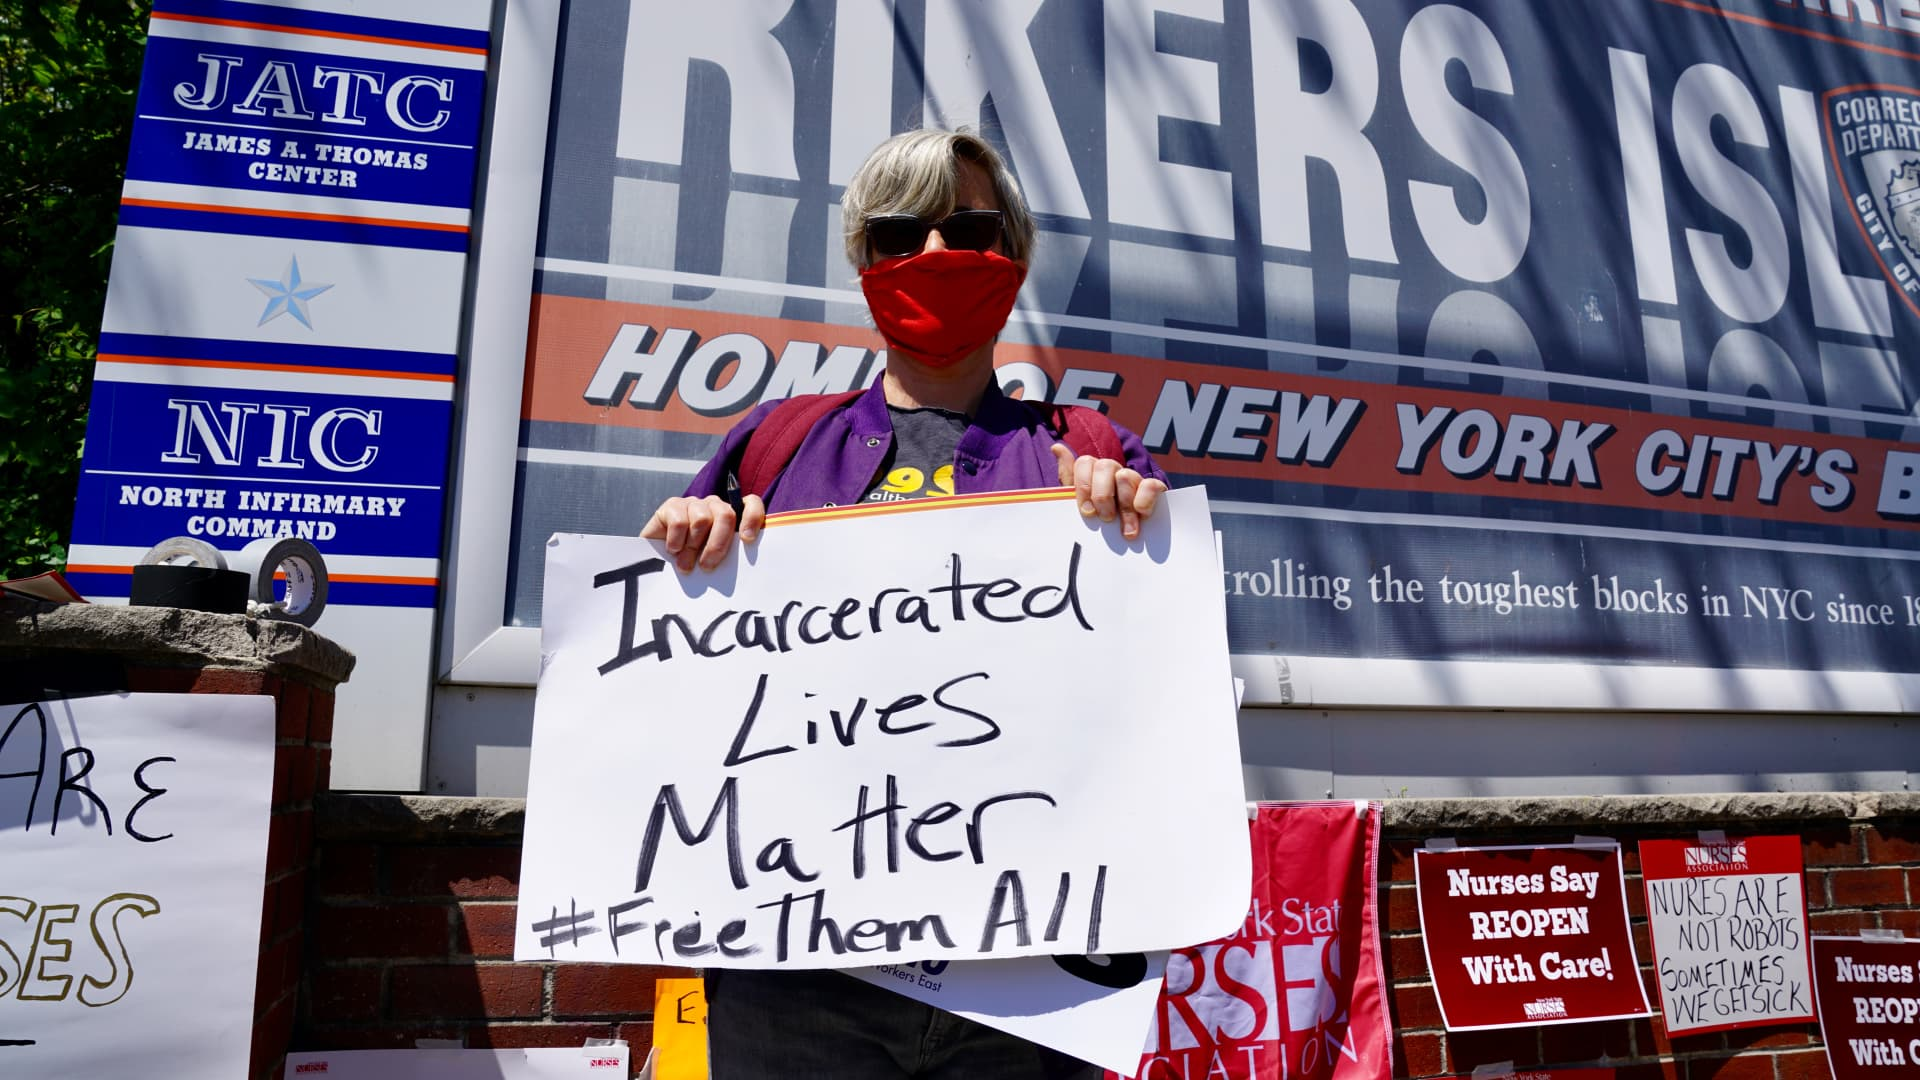 A nurse holds a sign during a nurses protest at Rikers Island Prison over conditions and coronavirus threat on May 7, 2020 in New York City.